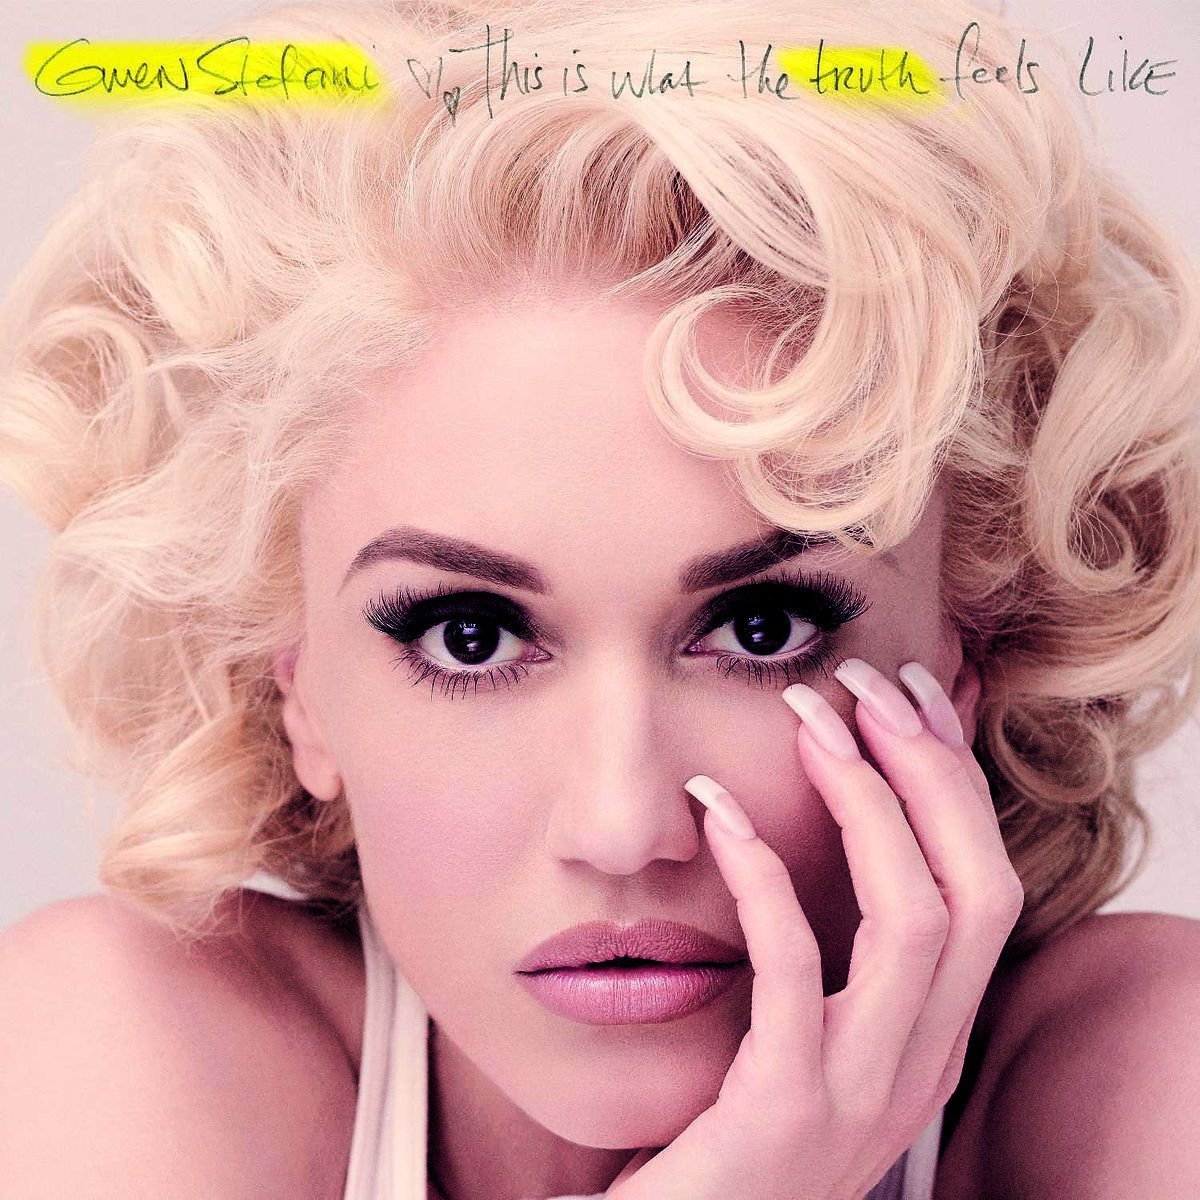 Gwen Stefani - This Is What The Truth Feels Like [LP] - Amazon.com Music